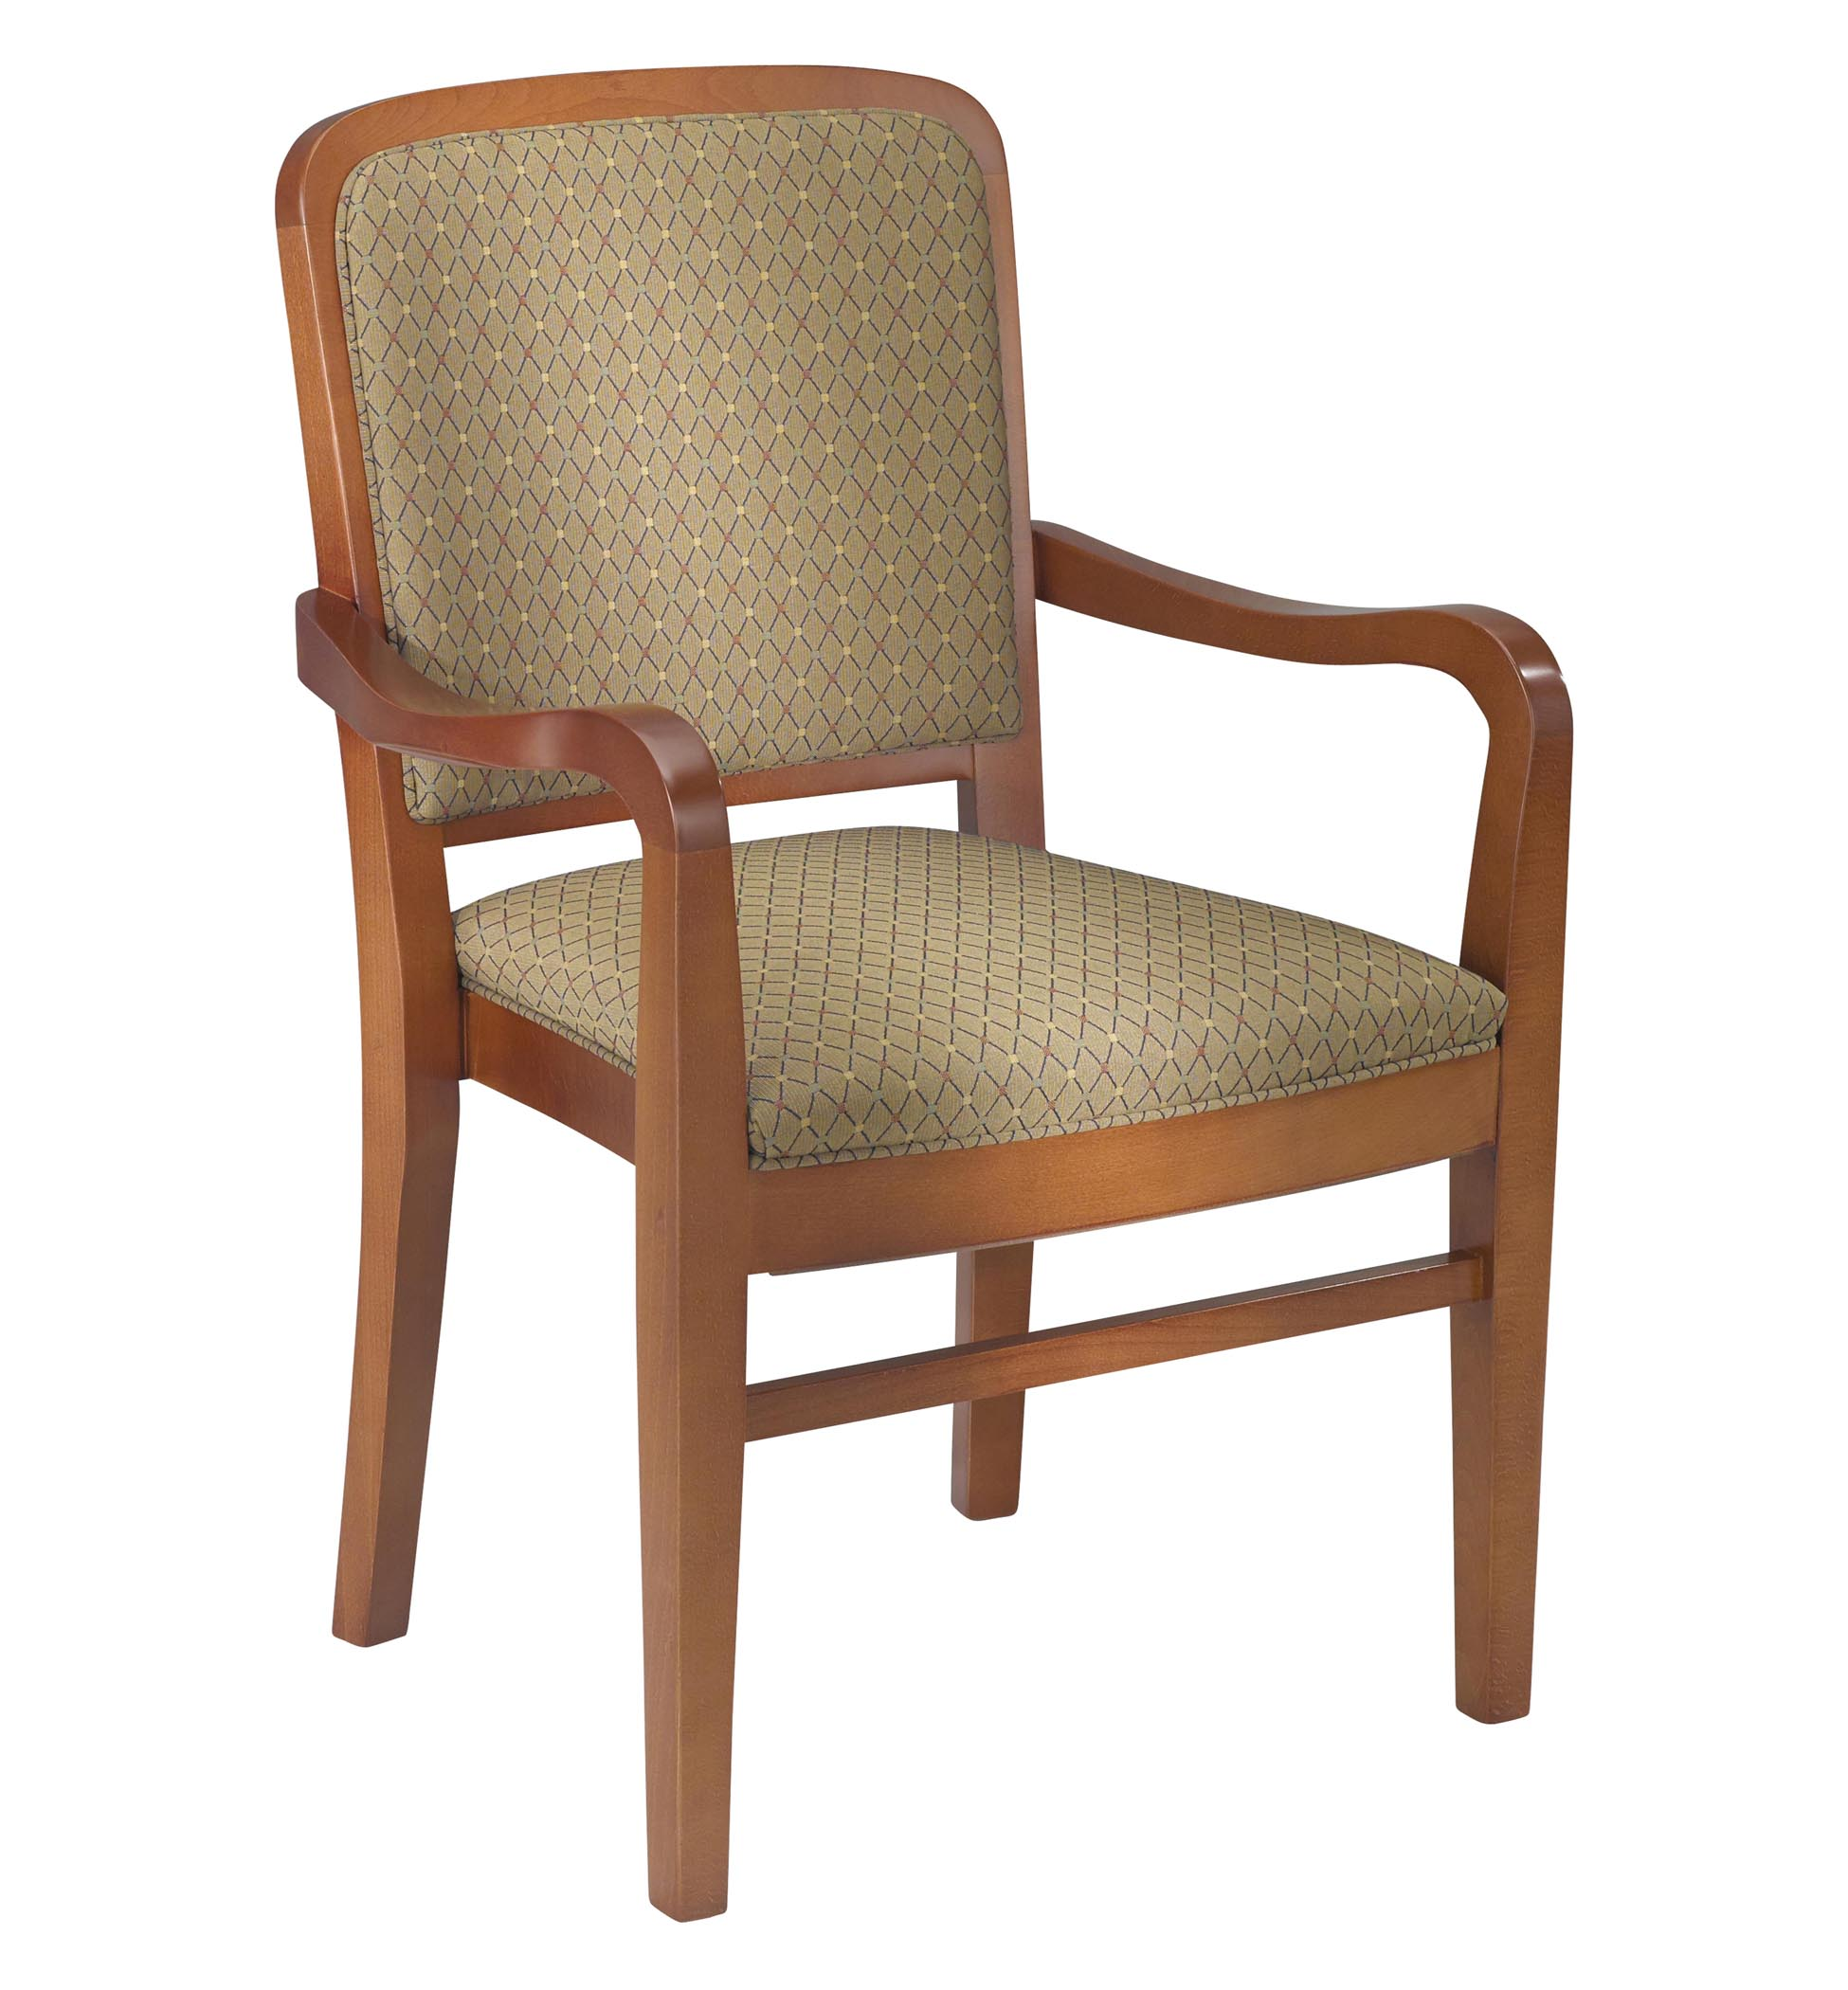 28 Wood Arm Chairs 2355 Wood Arm Chair Saarinen